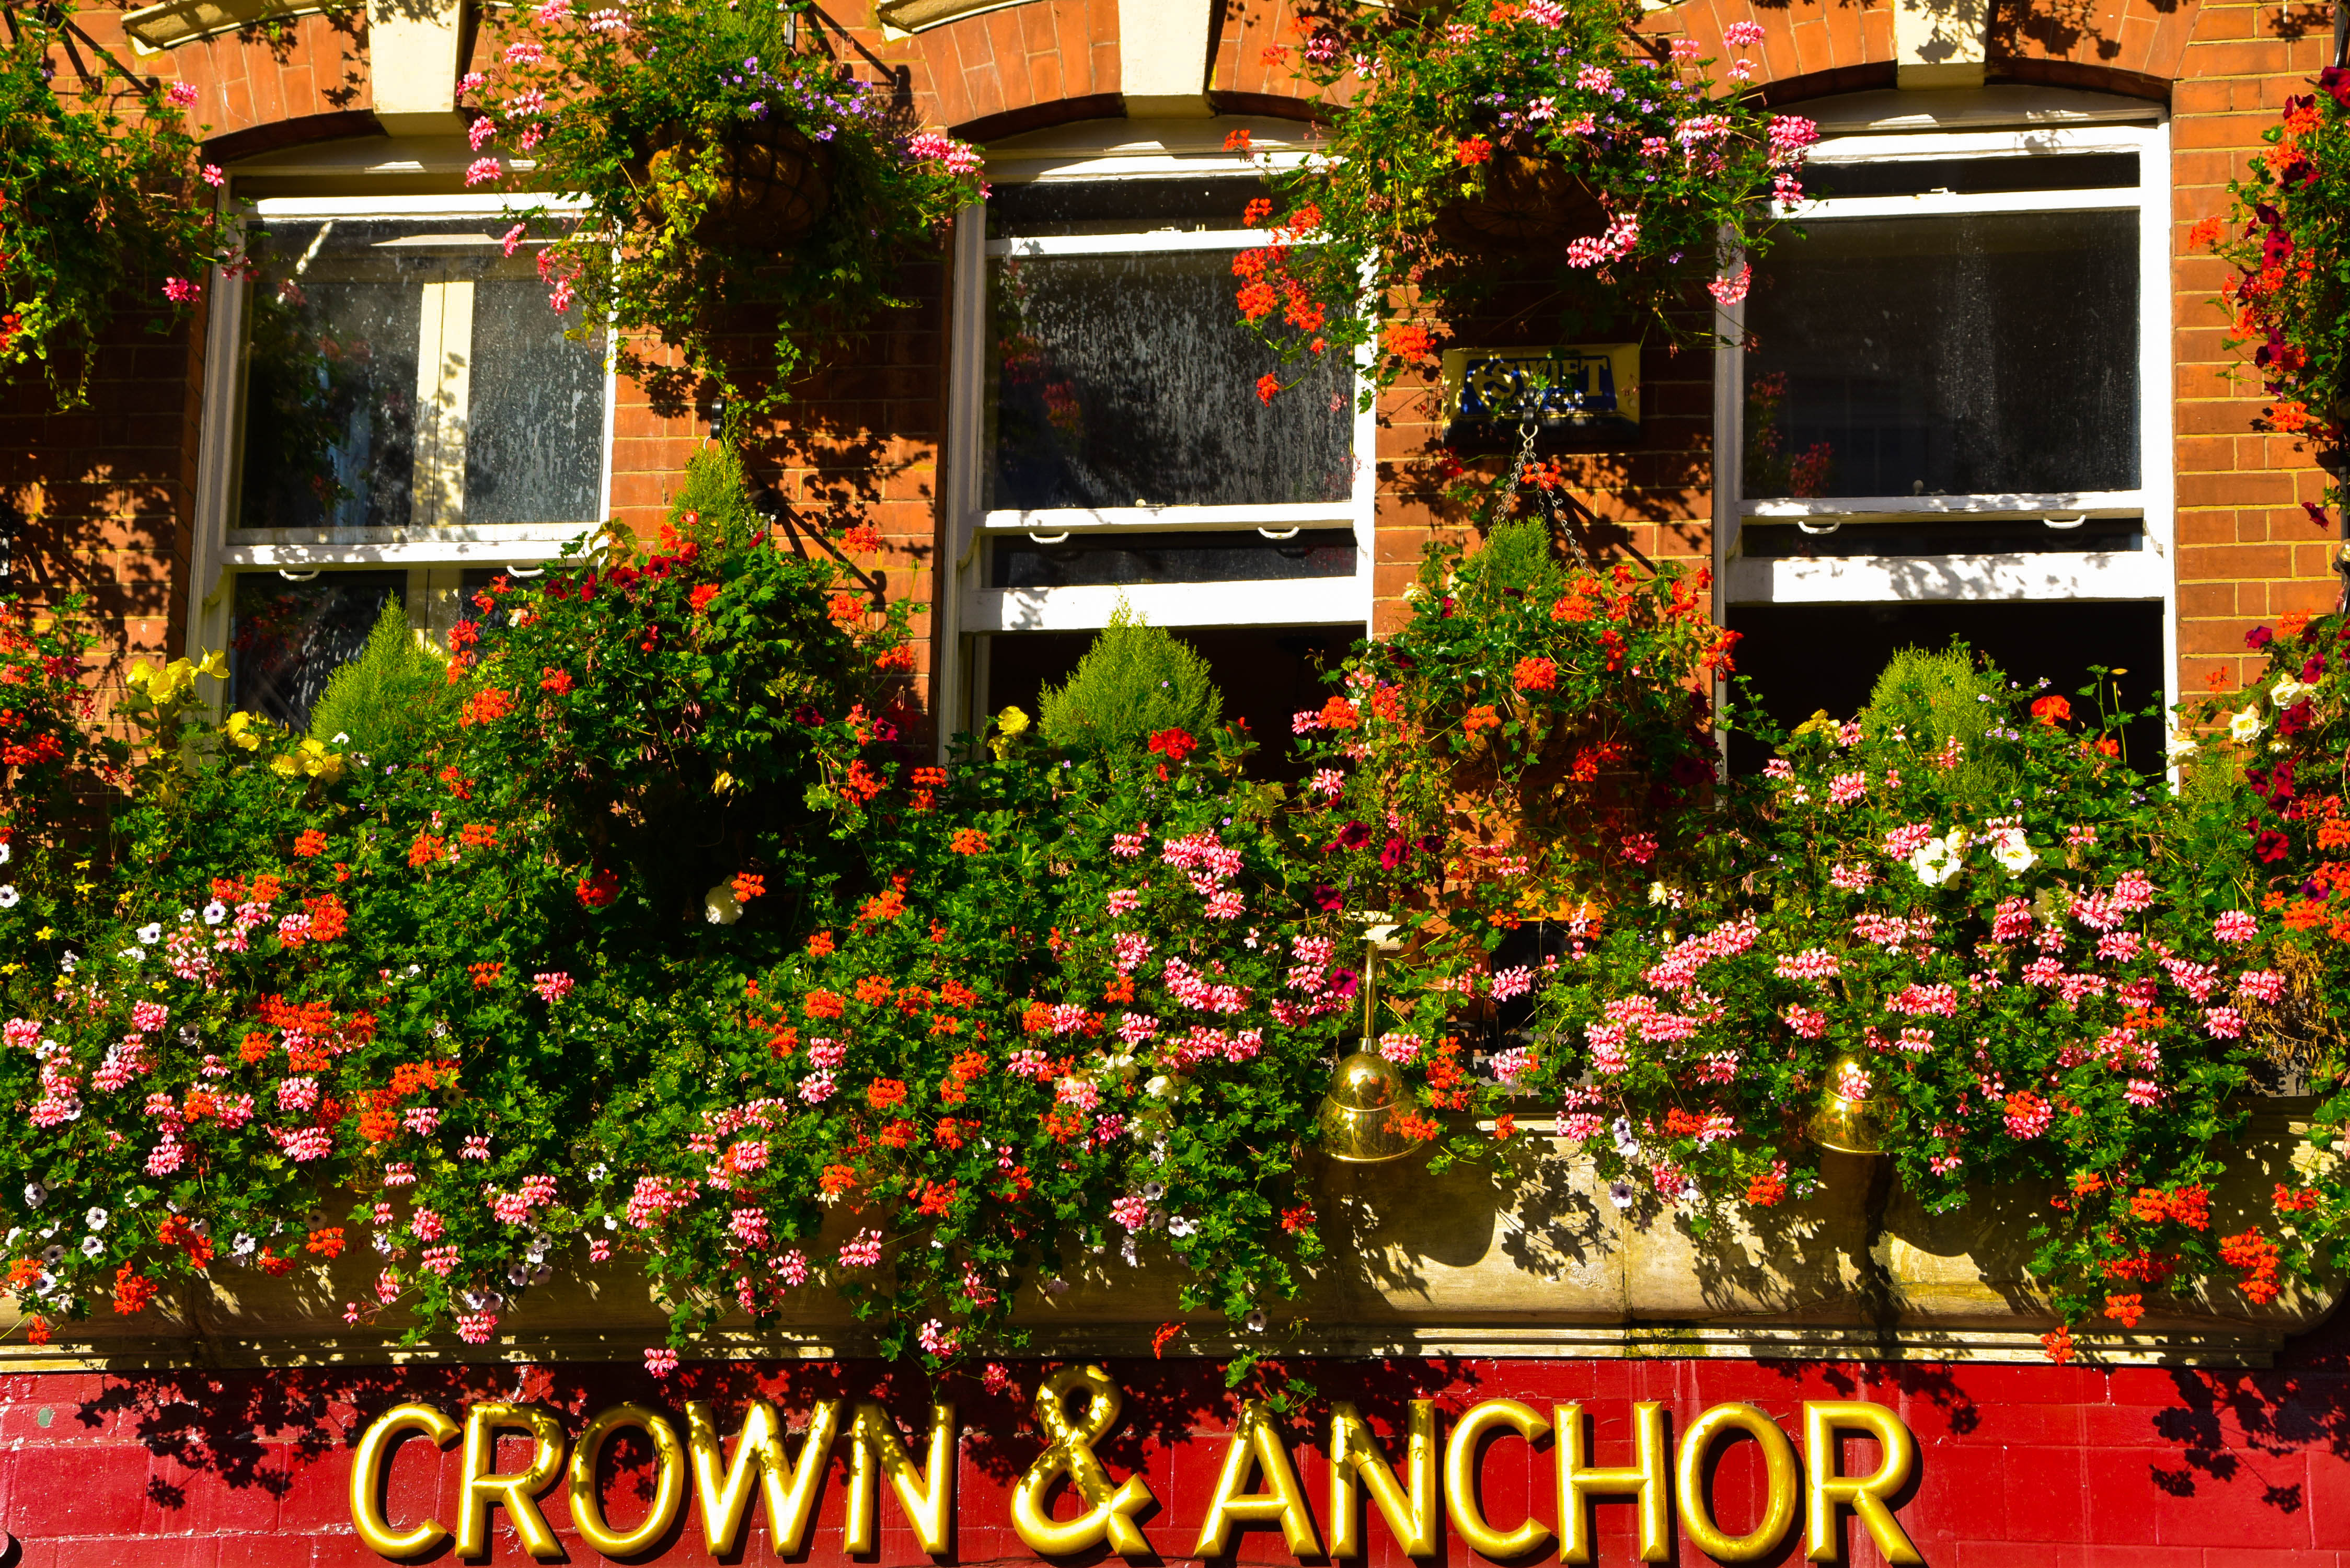 Crown & Anchor building